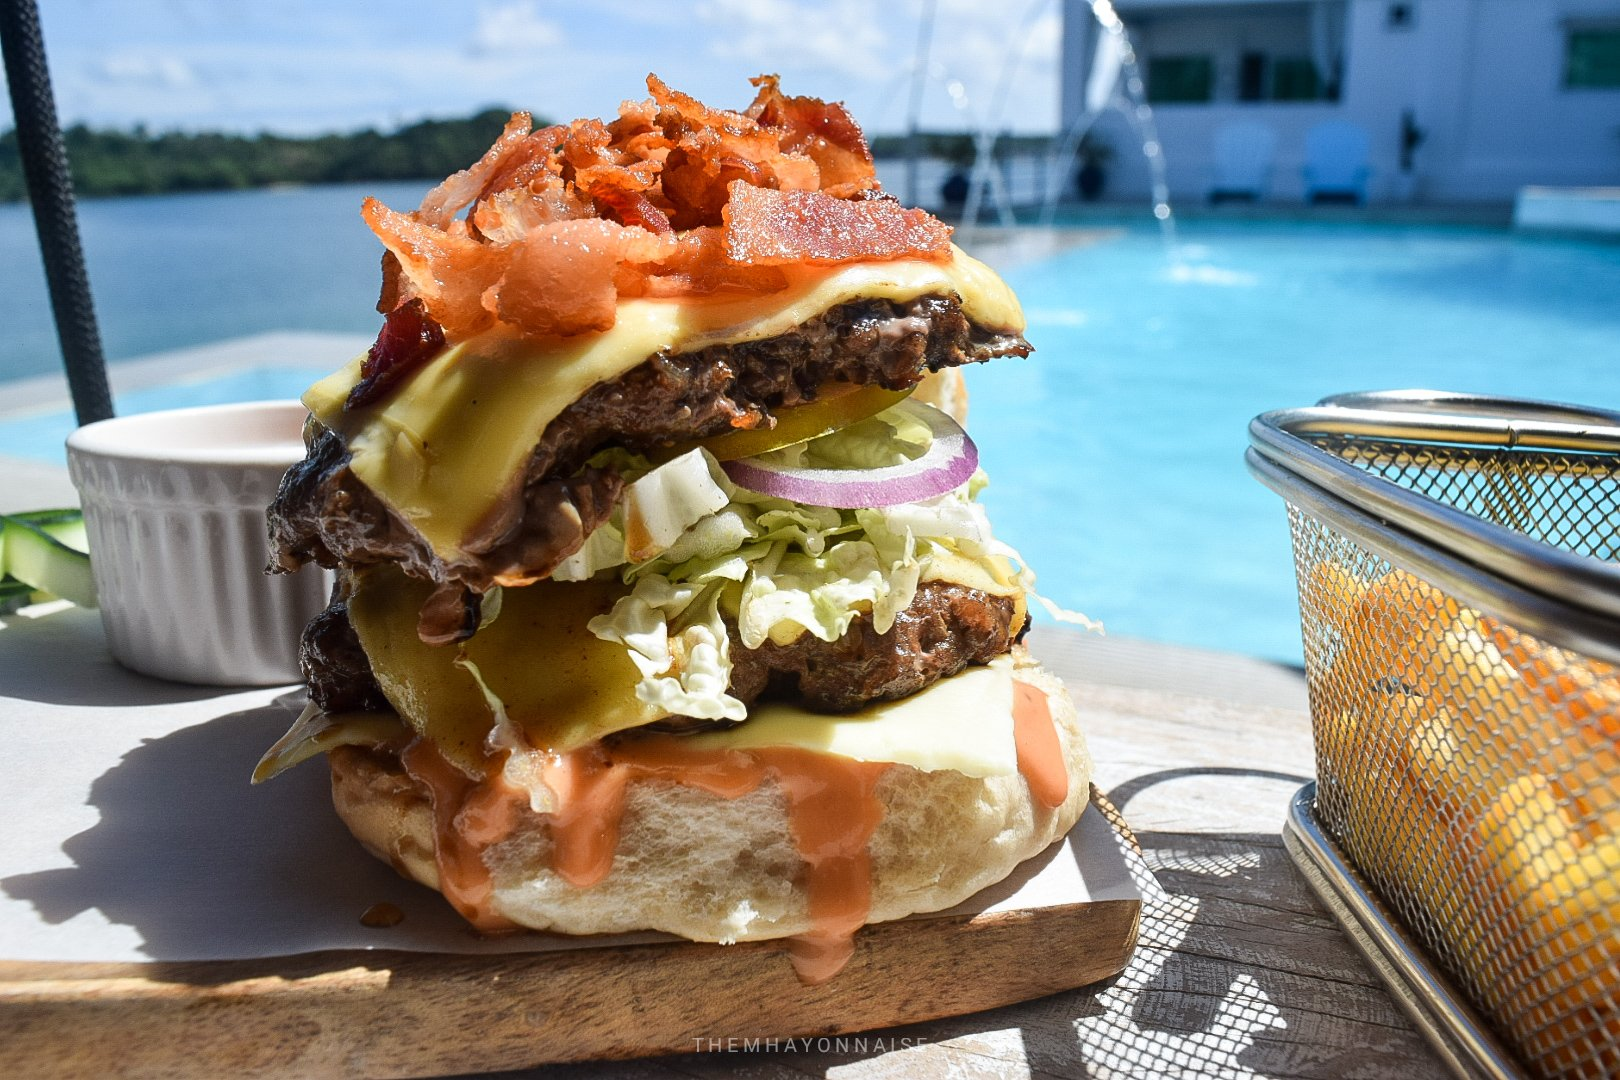 bacon cheeseburger | ciao pizzeria by the sea | sundowners bolinao | themhayonnaise